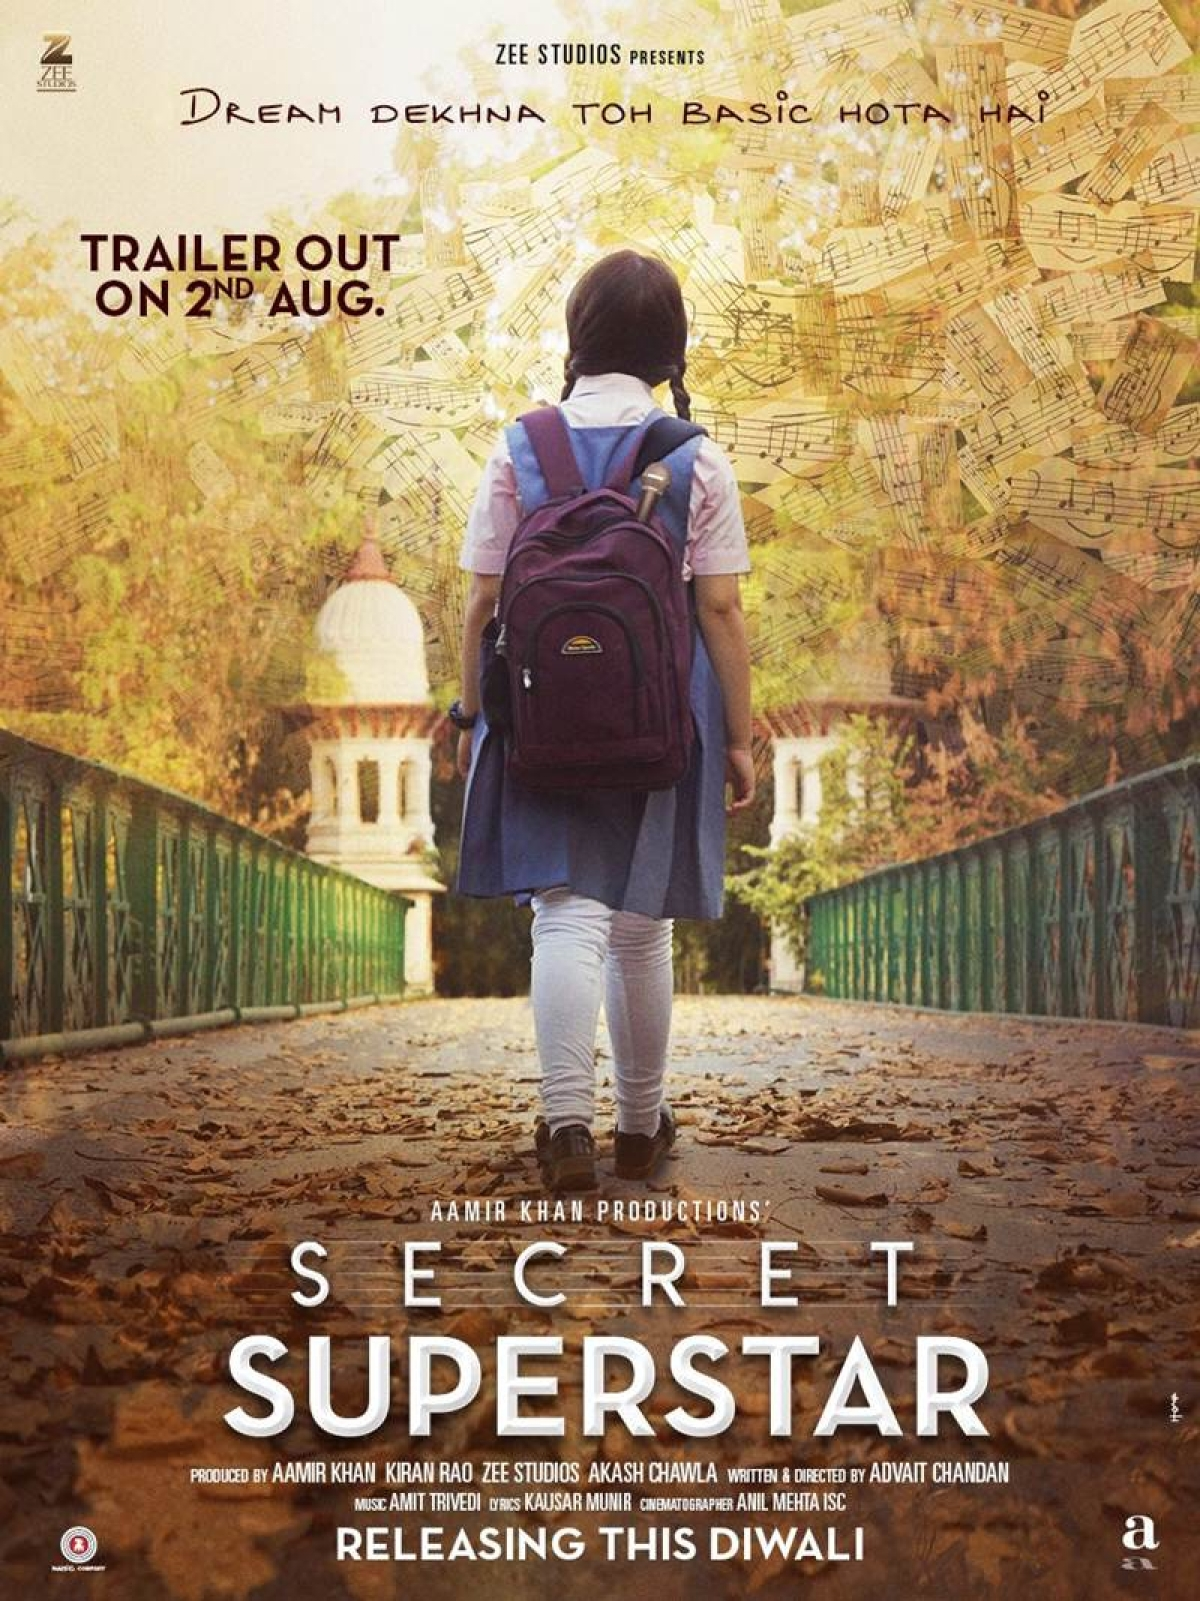 Aamir Khan shares first poster of home production 'Secret Superstar'